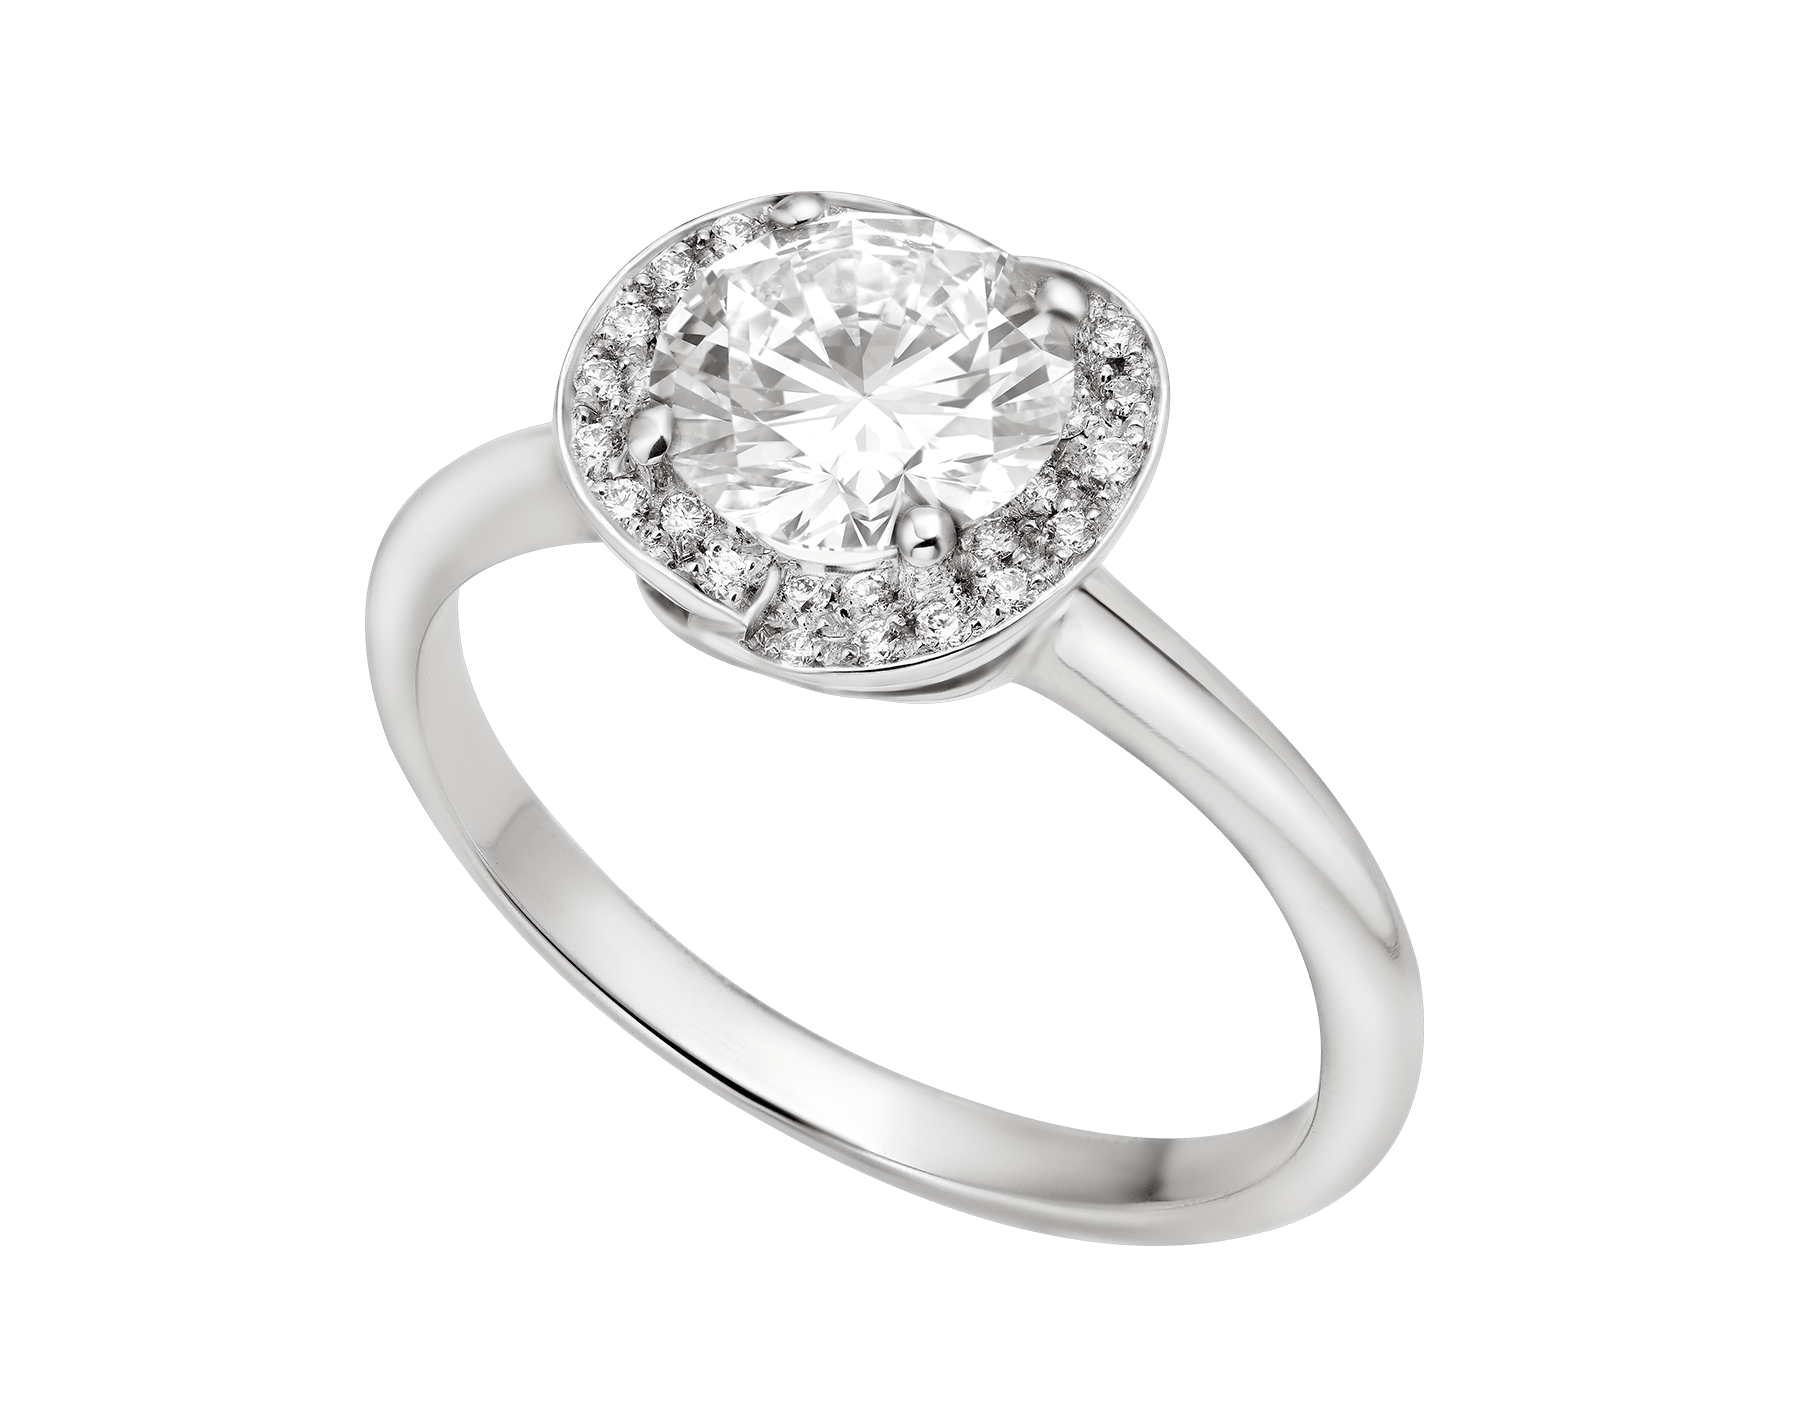 Incontro d'Amore platinum ring set with a round brilliant-cut diamond and a halo of pavé diamonds. 355436 image 3